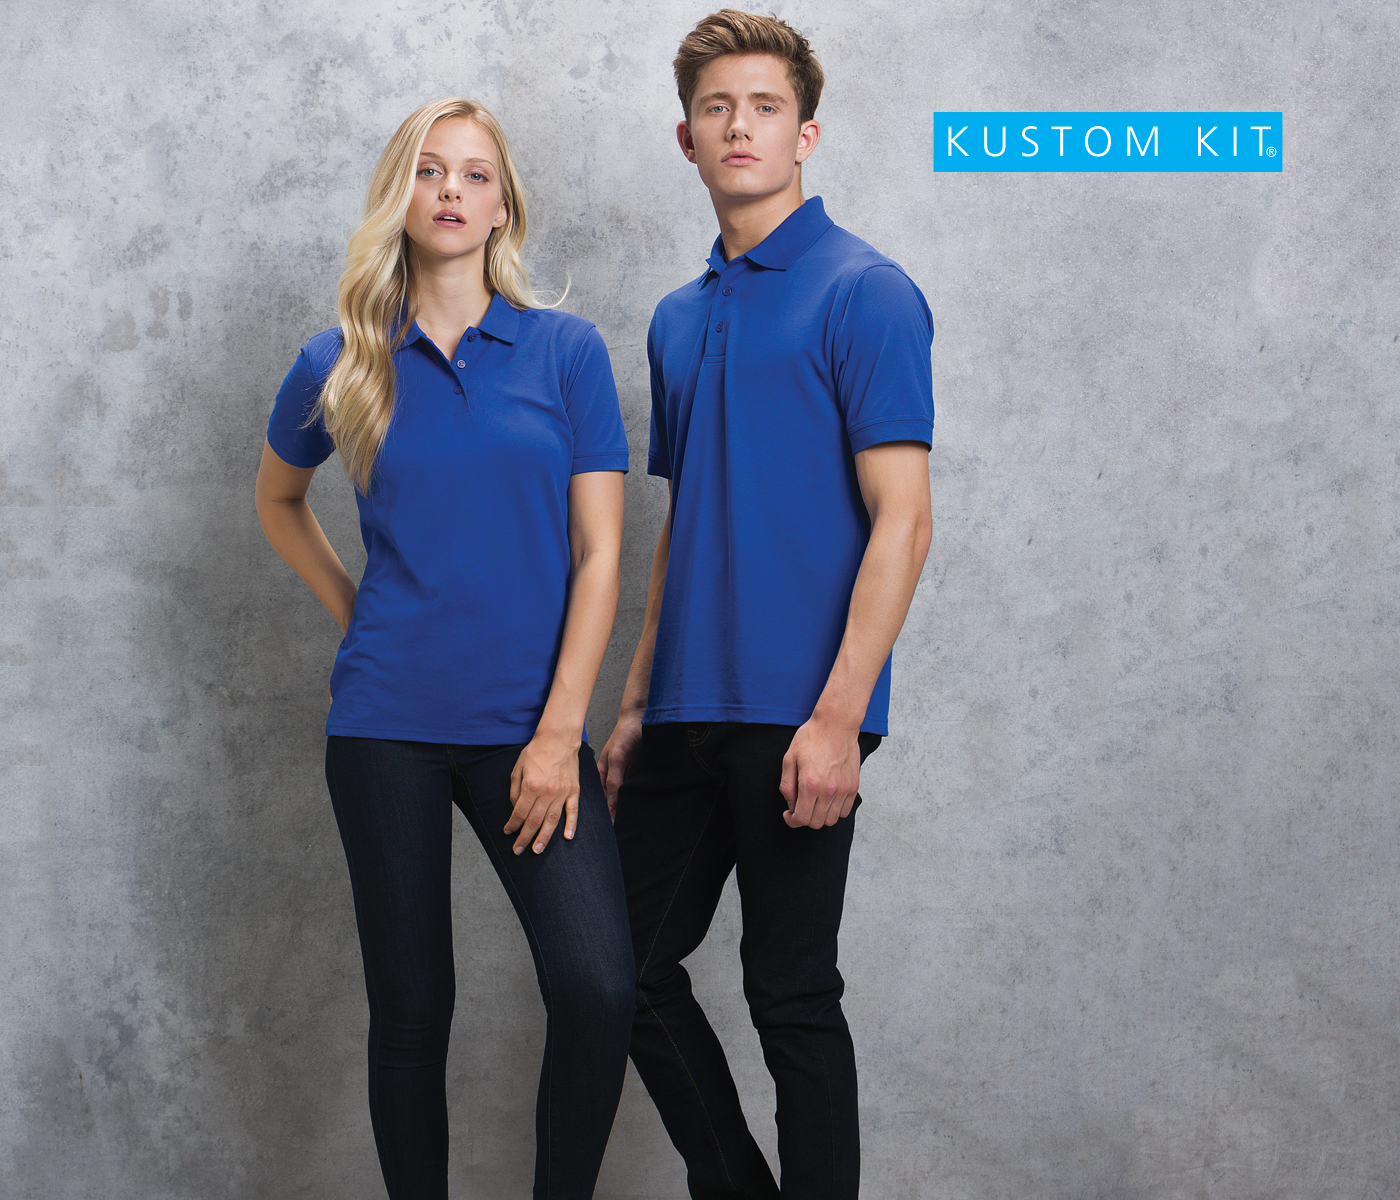 c98c05509 KUSTOM KIT - A collection of shirts and polos for men and women that  combine timeless styling with soft innovative fabrics in beautiful colours.